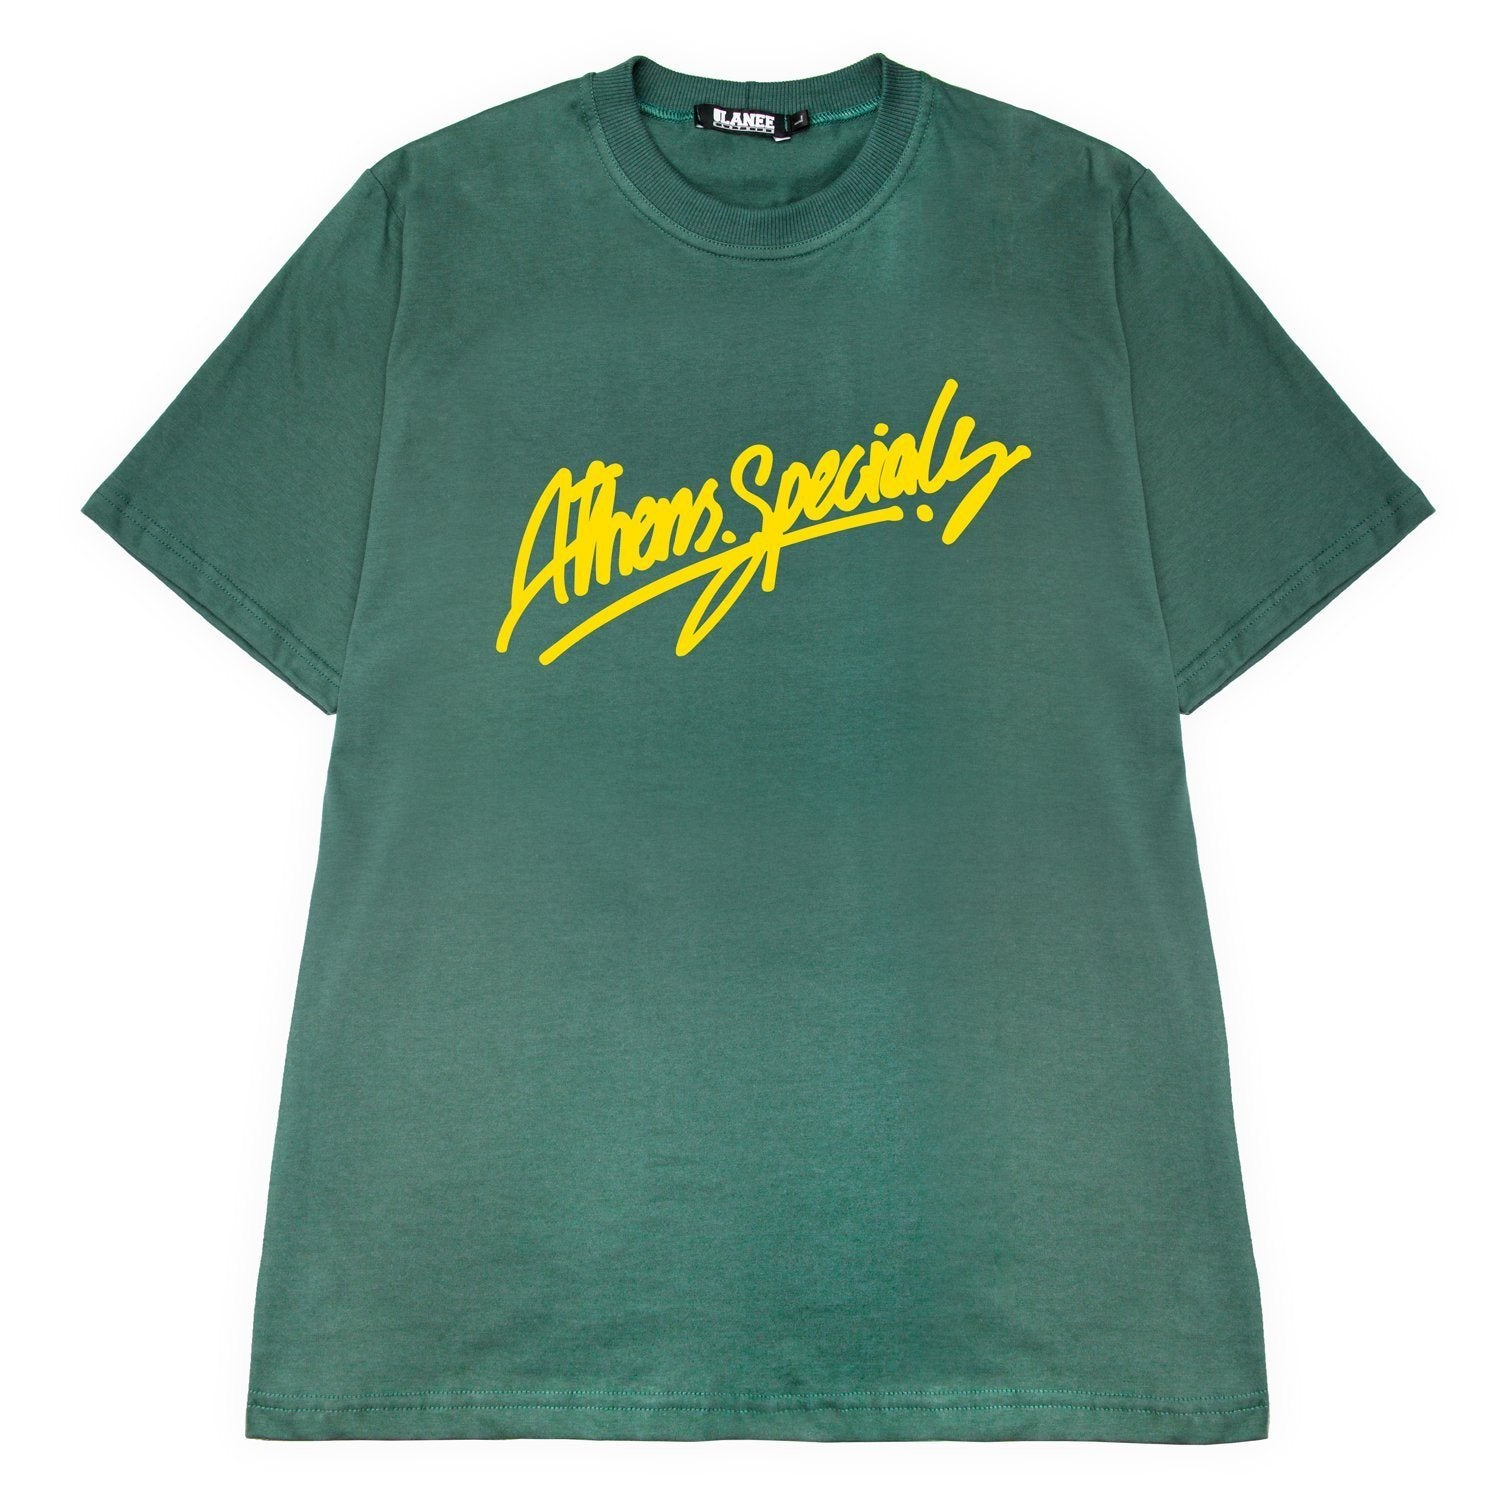 T-SHIRT - ATH.SPECIALS GREEN TEE